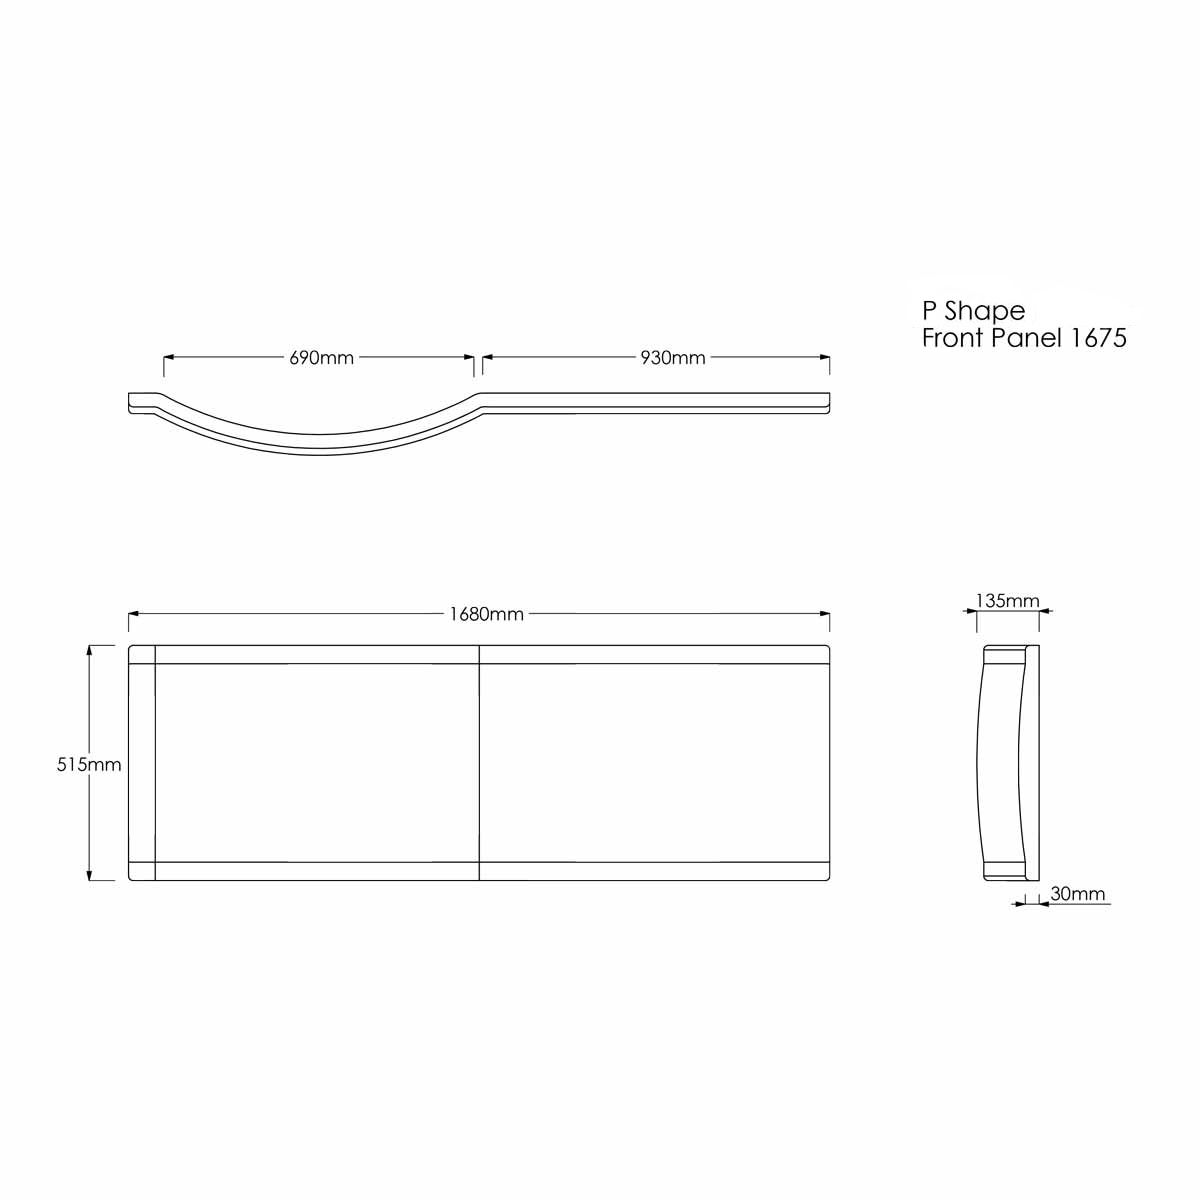 Concert P Shape Shower Bath Panel Dimensions